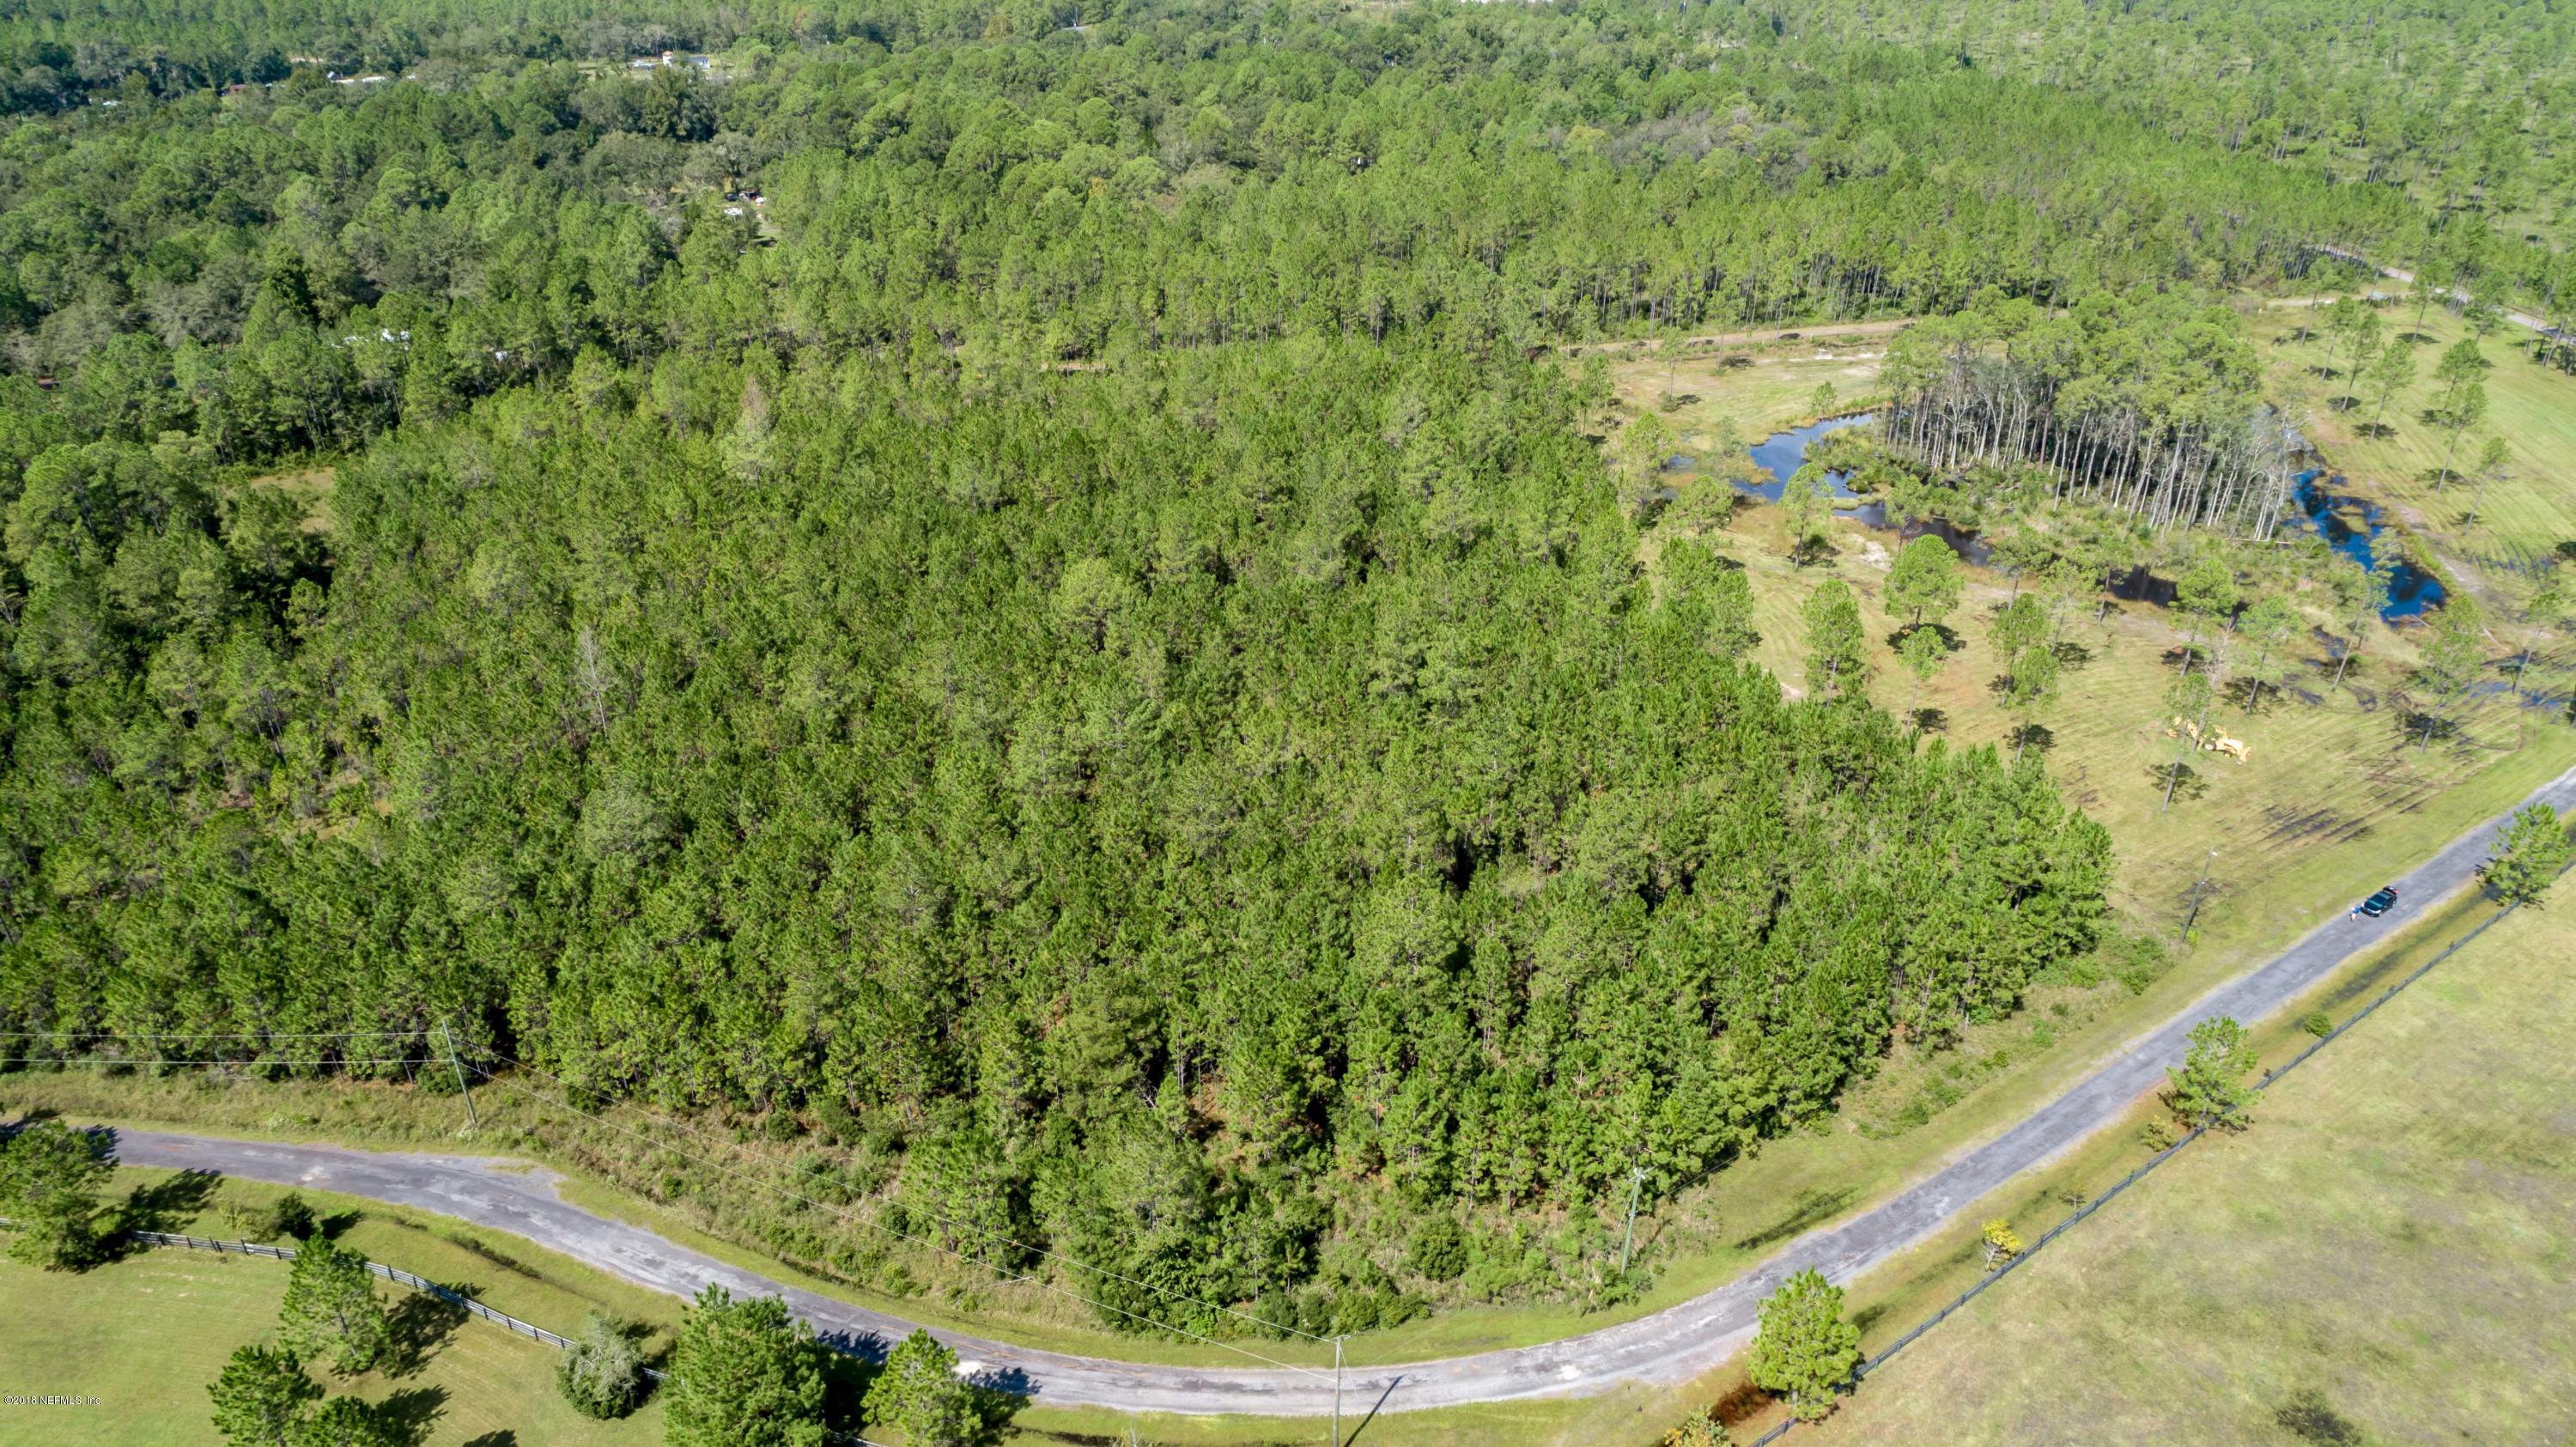 0 FOREST TRAIL, JACKSONVILLE, FLORIDA 32234, ,Vacant land,For sale,FOREST TRAIL,961828